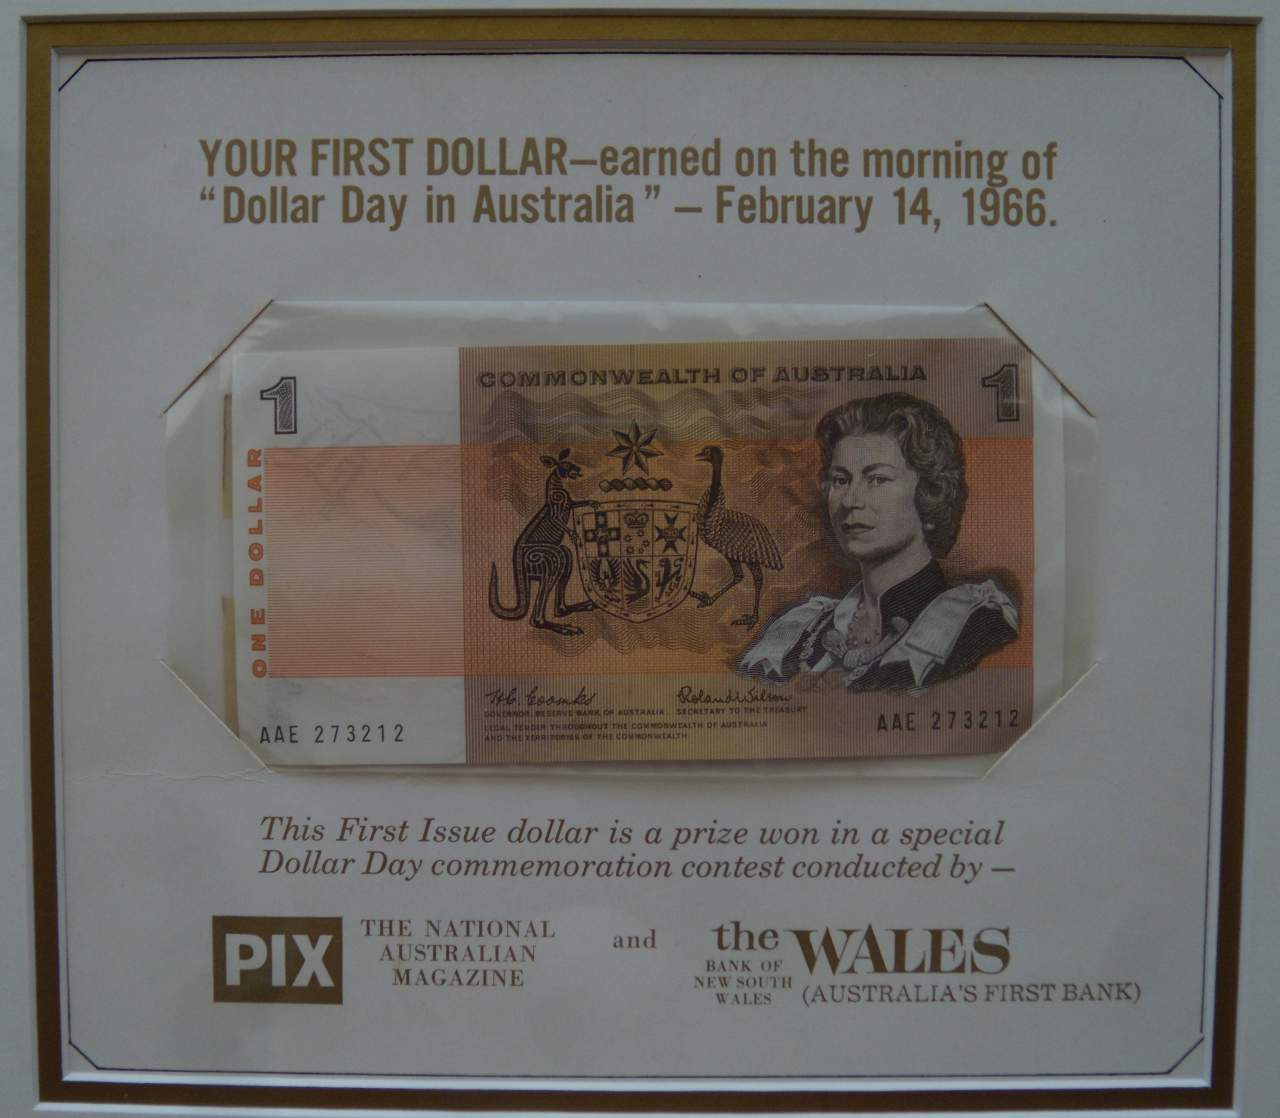 """YOUR FIRST DOLLAR -earned on the morning of """"Dollar Day in Australia""""-February 14, 1966 Prize"""